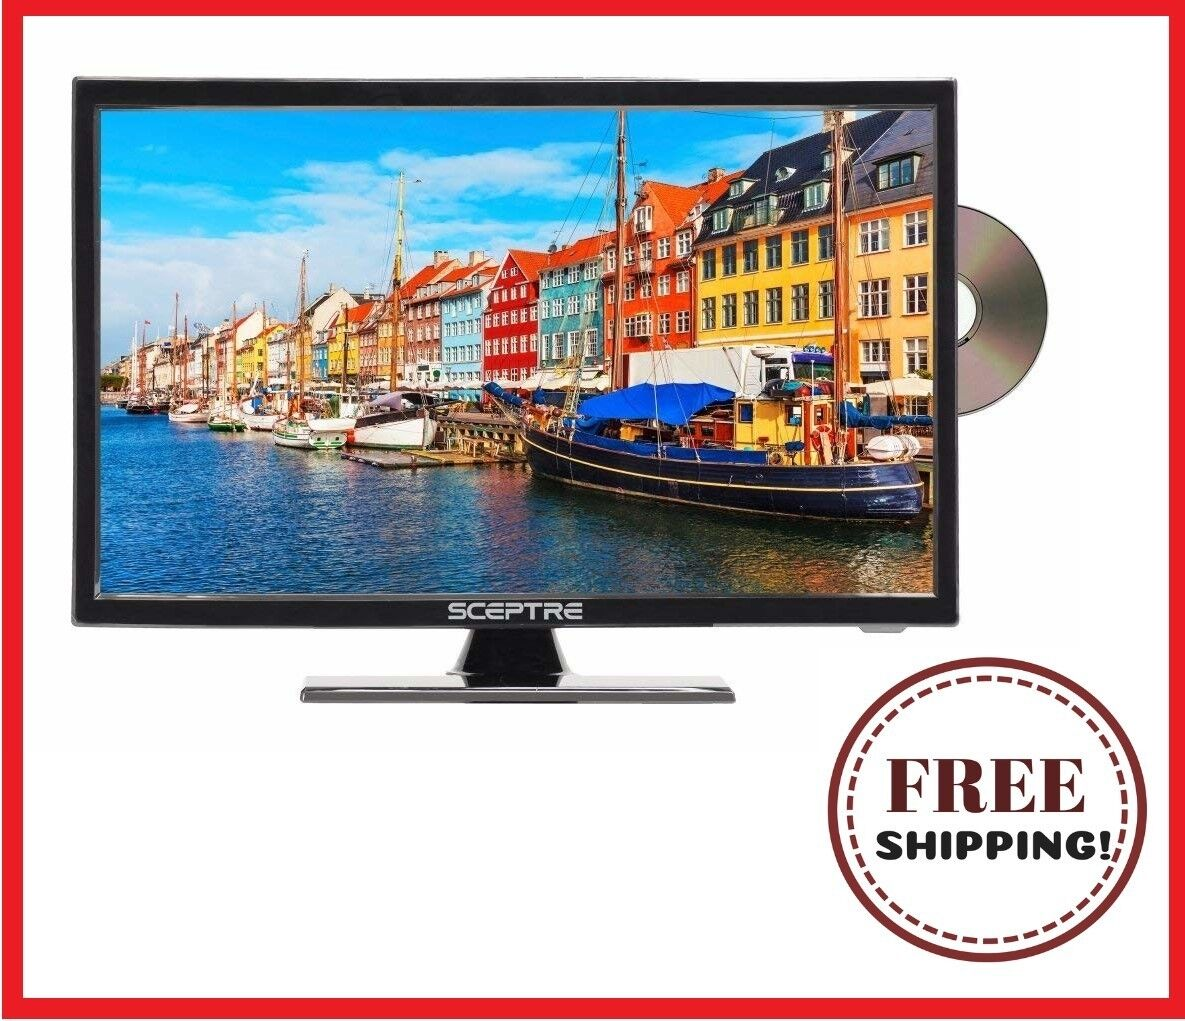 """LED TV 19"""" Class 720P HDTV with Built-in DVD Player Wall-Mou"""